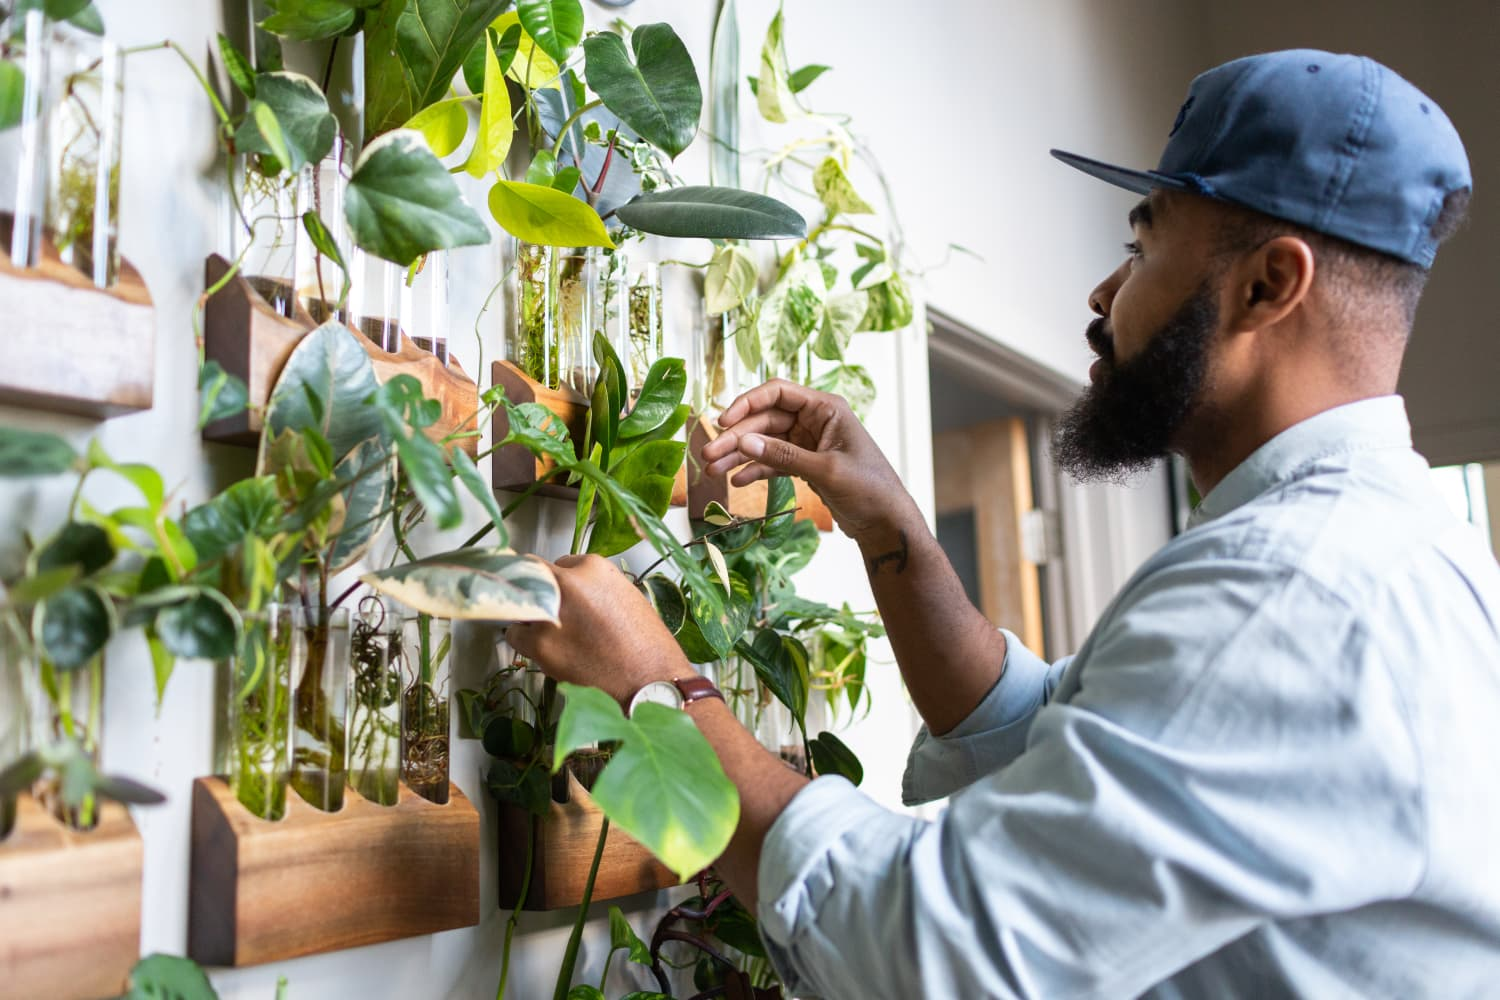 11 Propagation Stations (Starting at $6) for People Who Like Free Plants and Beautiful Decor